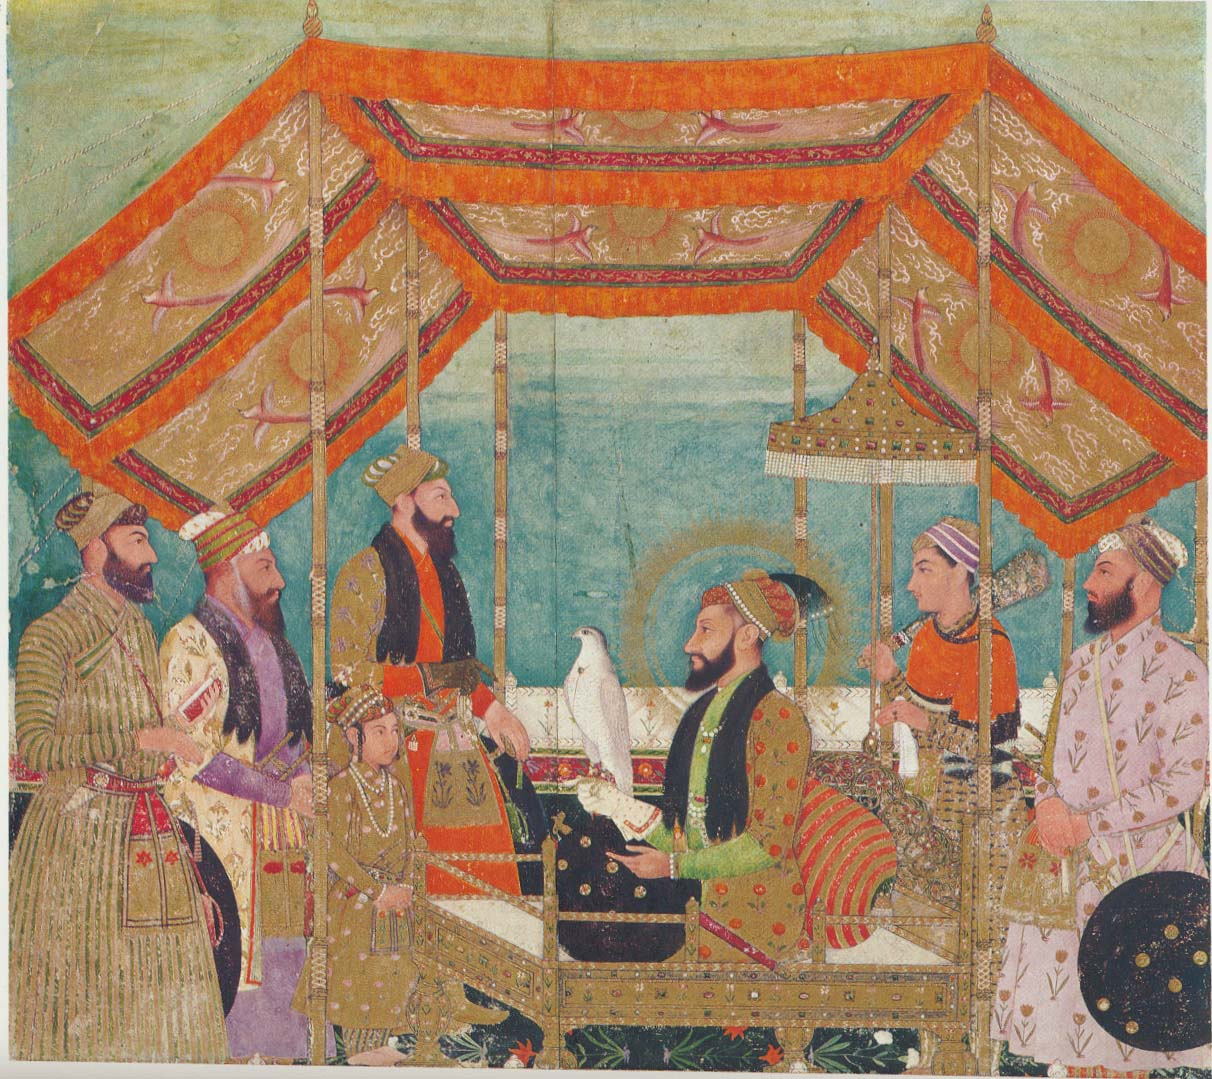 Guru Tegh Bahadur was assassinated on Aurangzeb's (above) orders, pitting his son, Guru Gobind Singh, in a battle with the Mughal emperor.